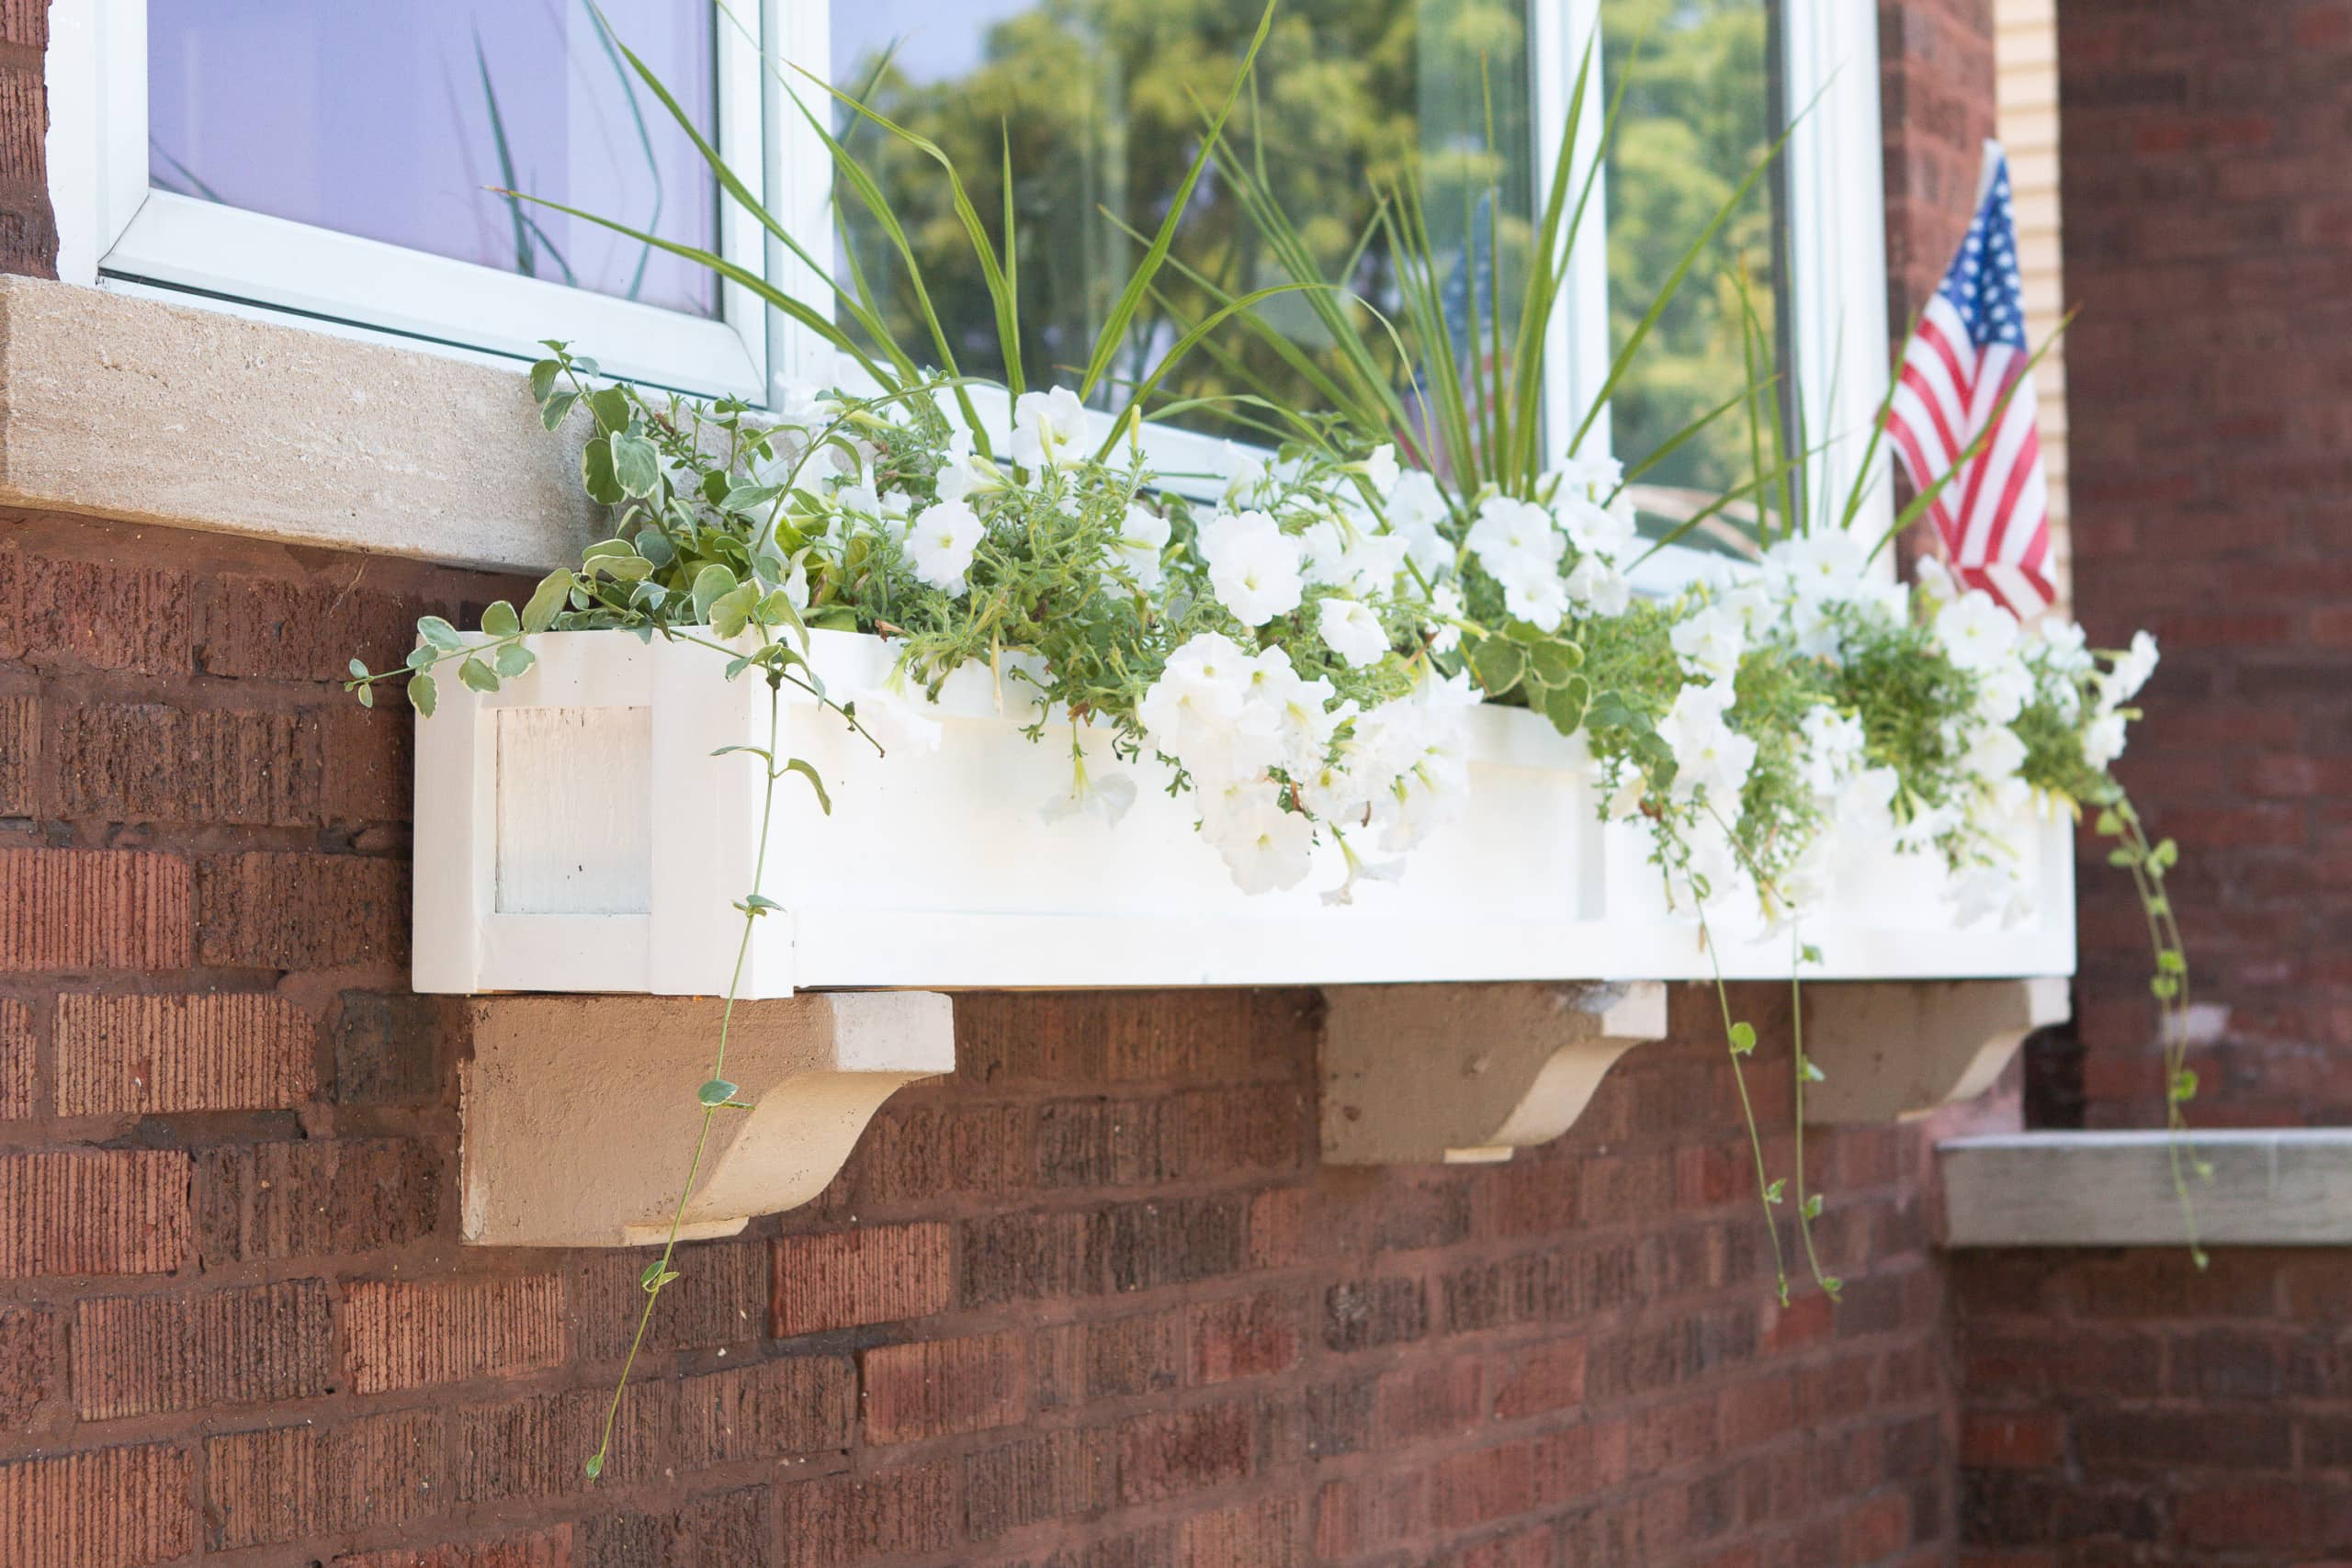 How to plant in a window box